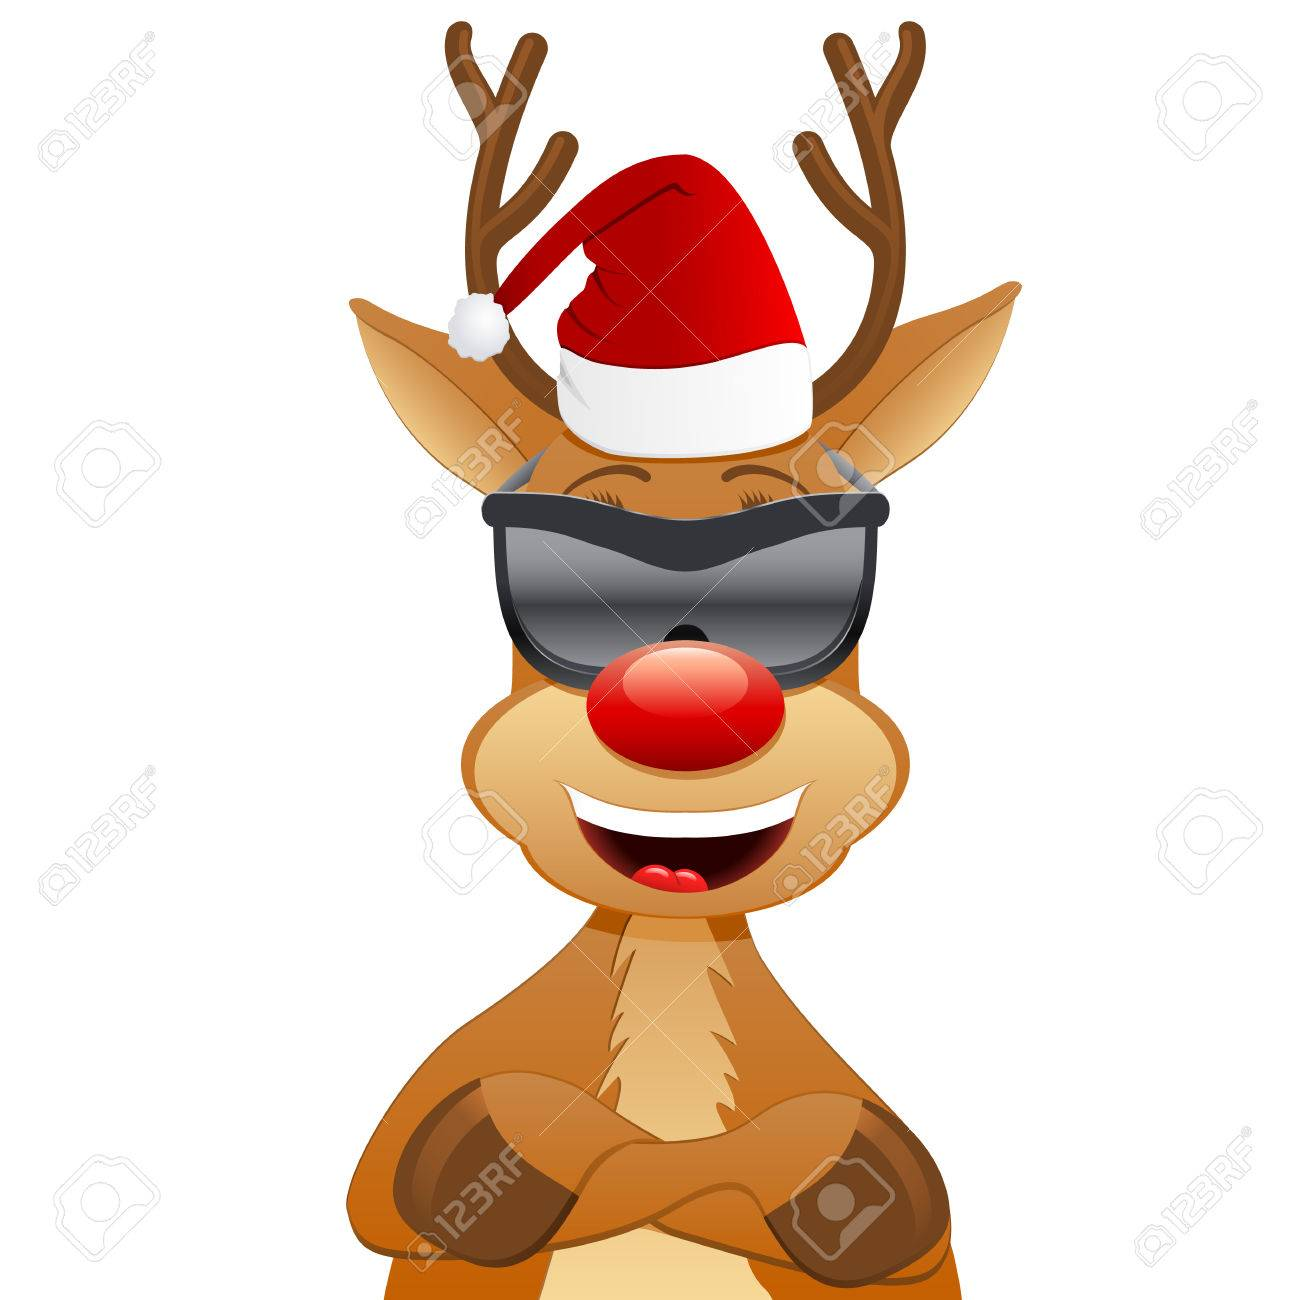 reindeer with Santa hat and sunglasses Stock Vector - 24536736